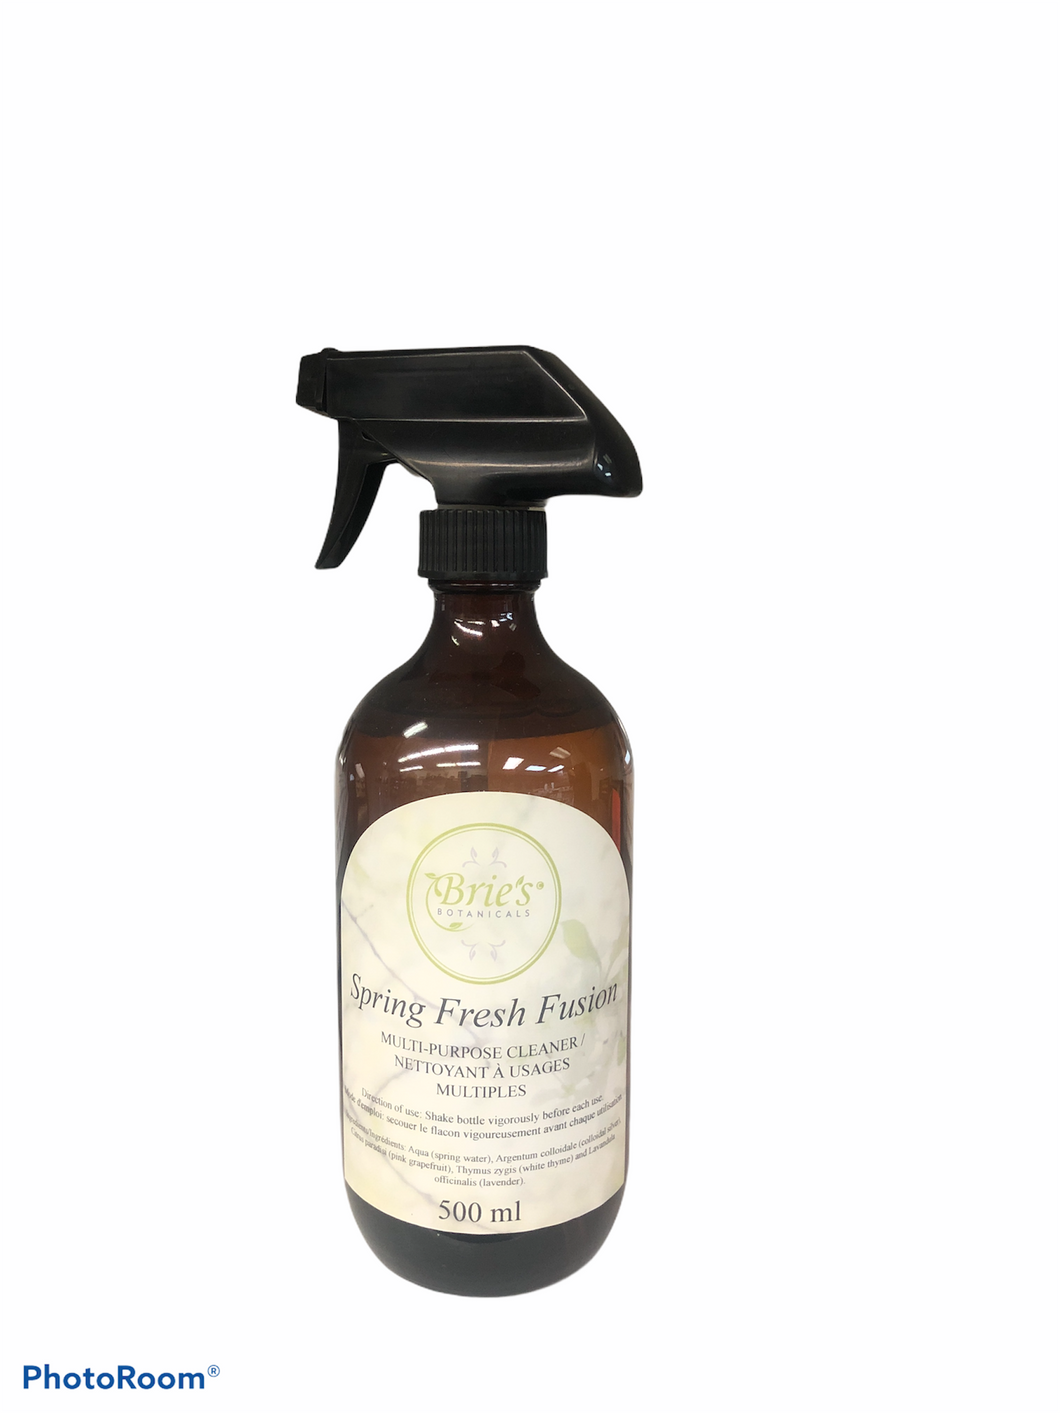 Brie's Botanicals Multi purpose cleaner